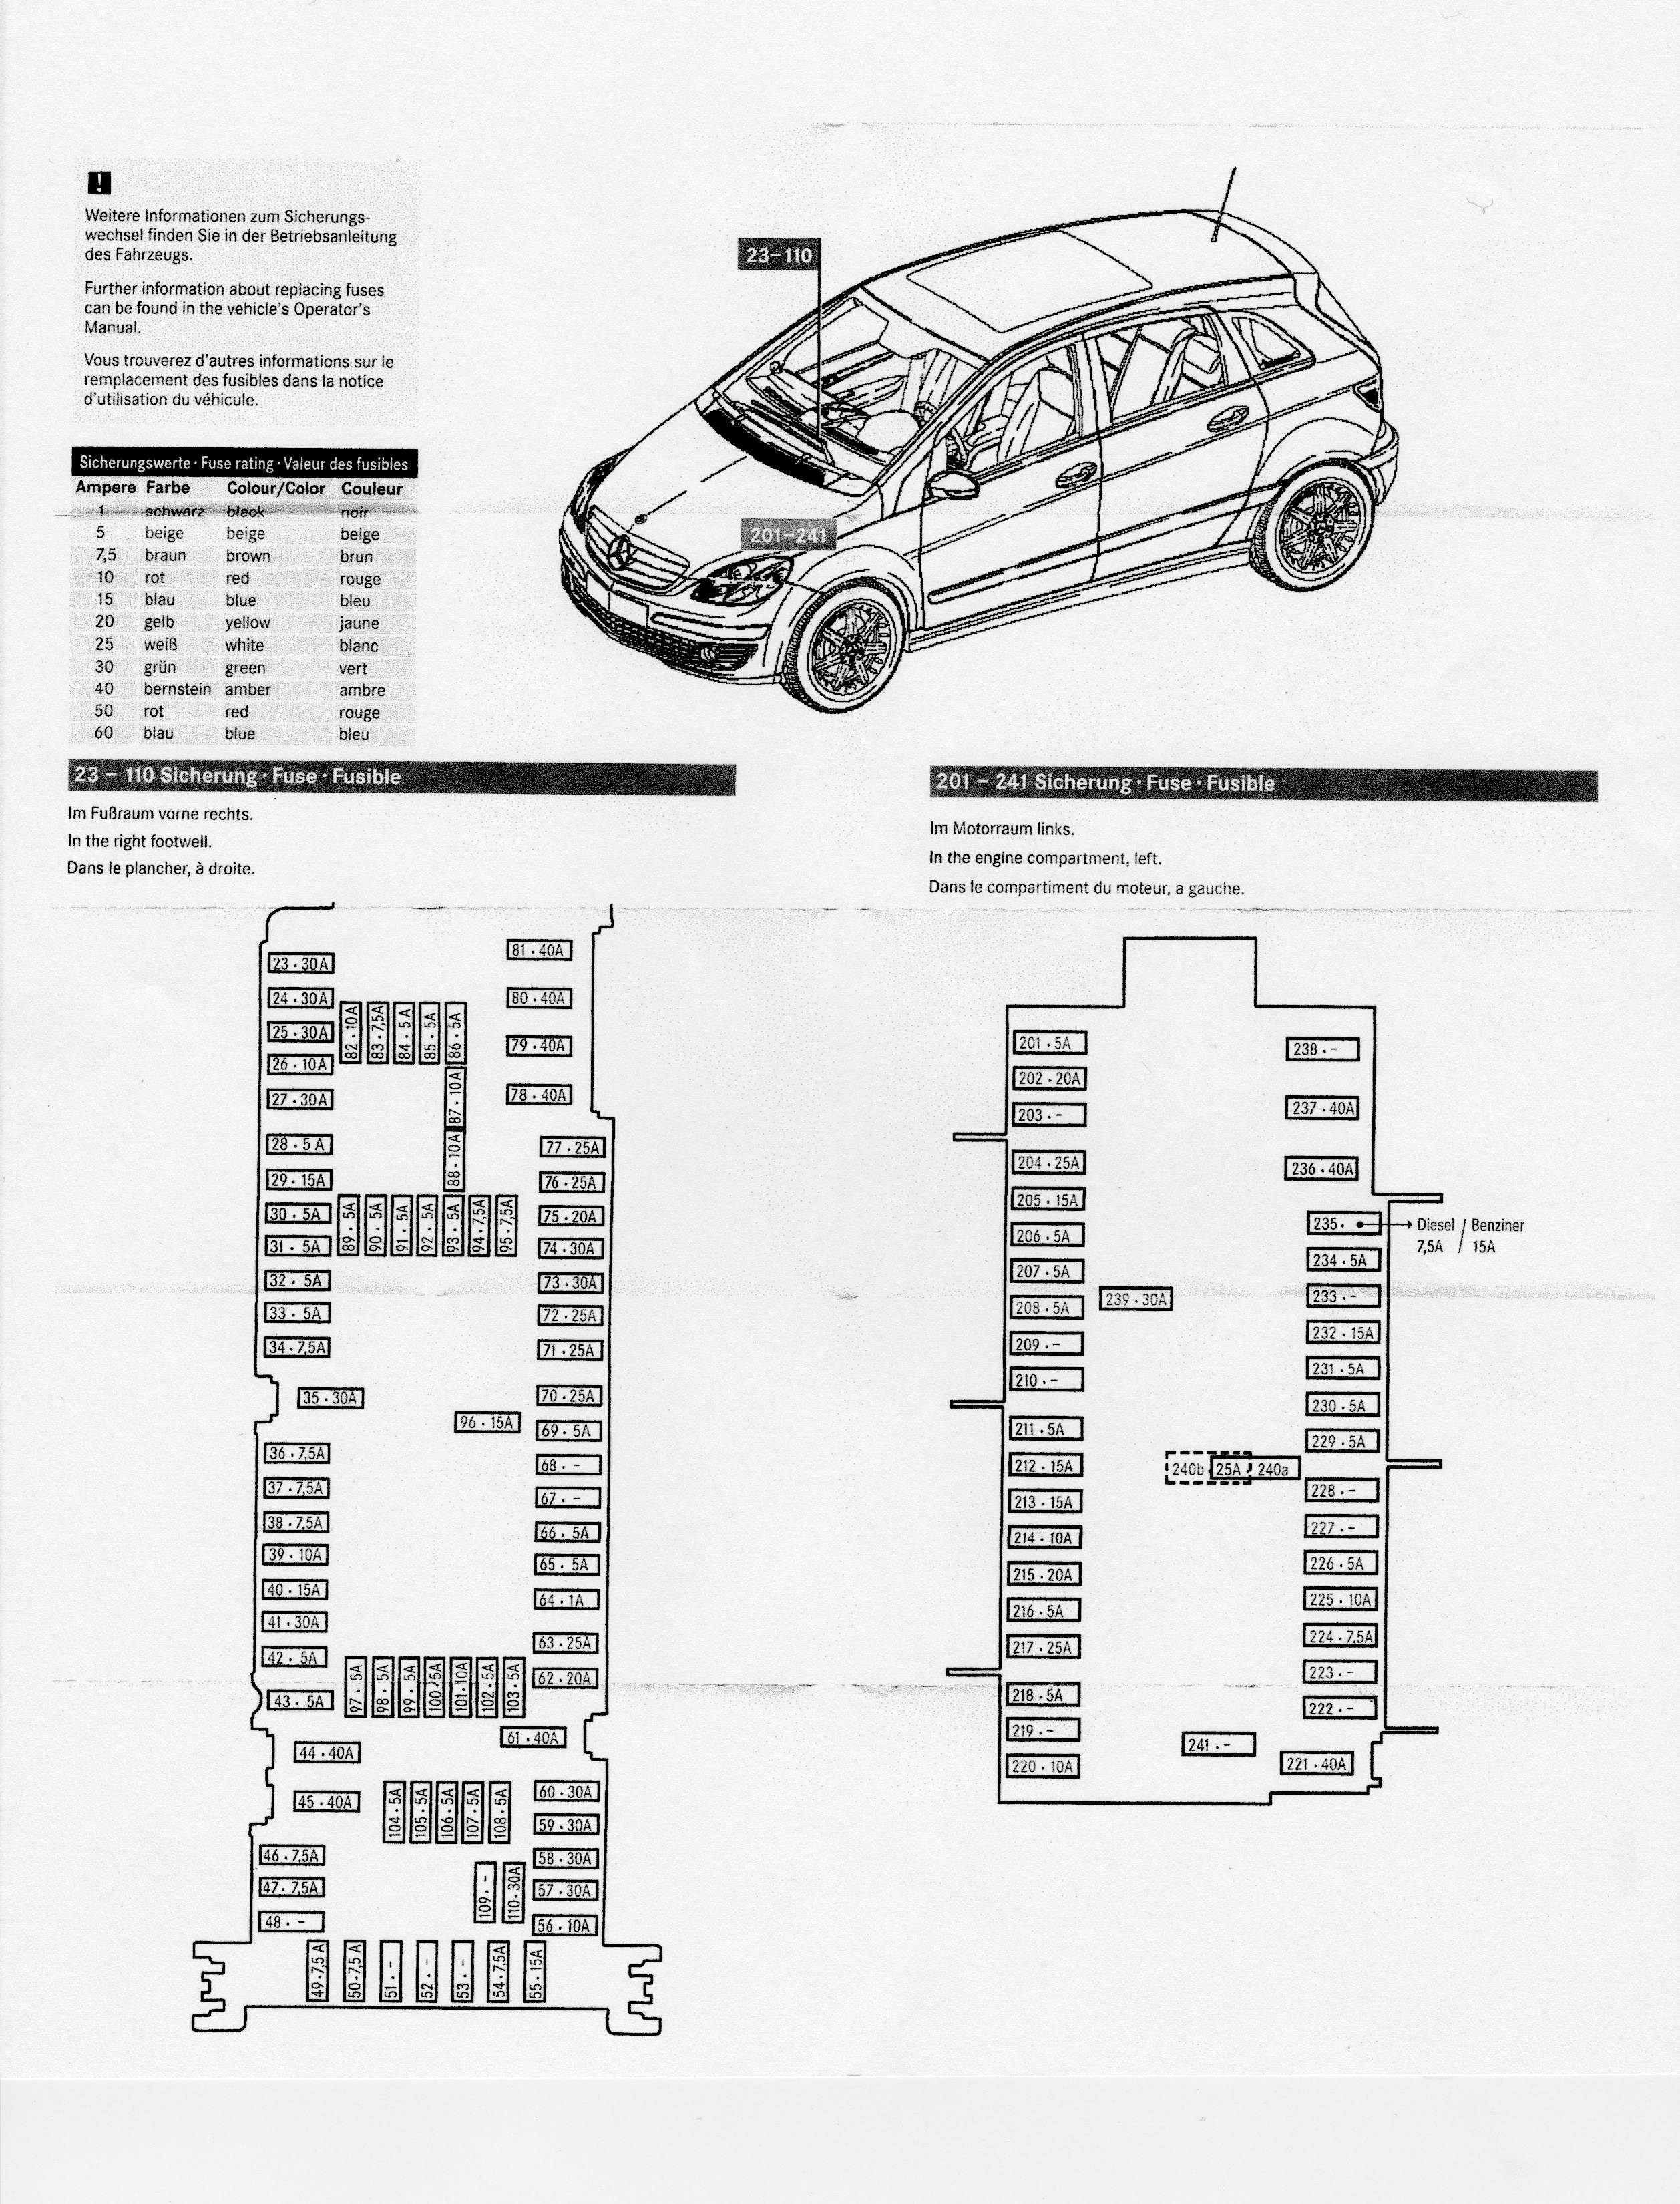 In Line Fuse Box in addition Honda Crx Ignition System Schematic further 1997 Acura Integra Fuse Box as well 5038 Cla 250 Fuse Information together with 2000 Honda Civic Main Relay Wiring Diagram. on 1995 honda accord ex fuse box location